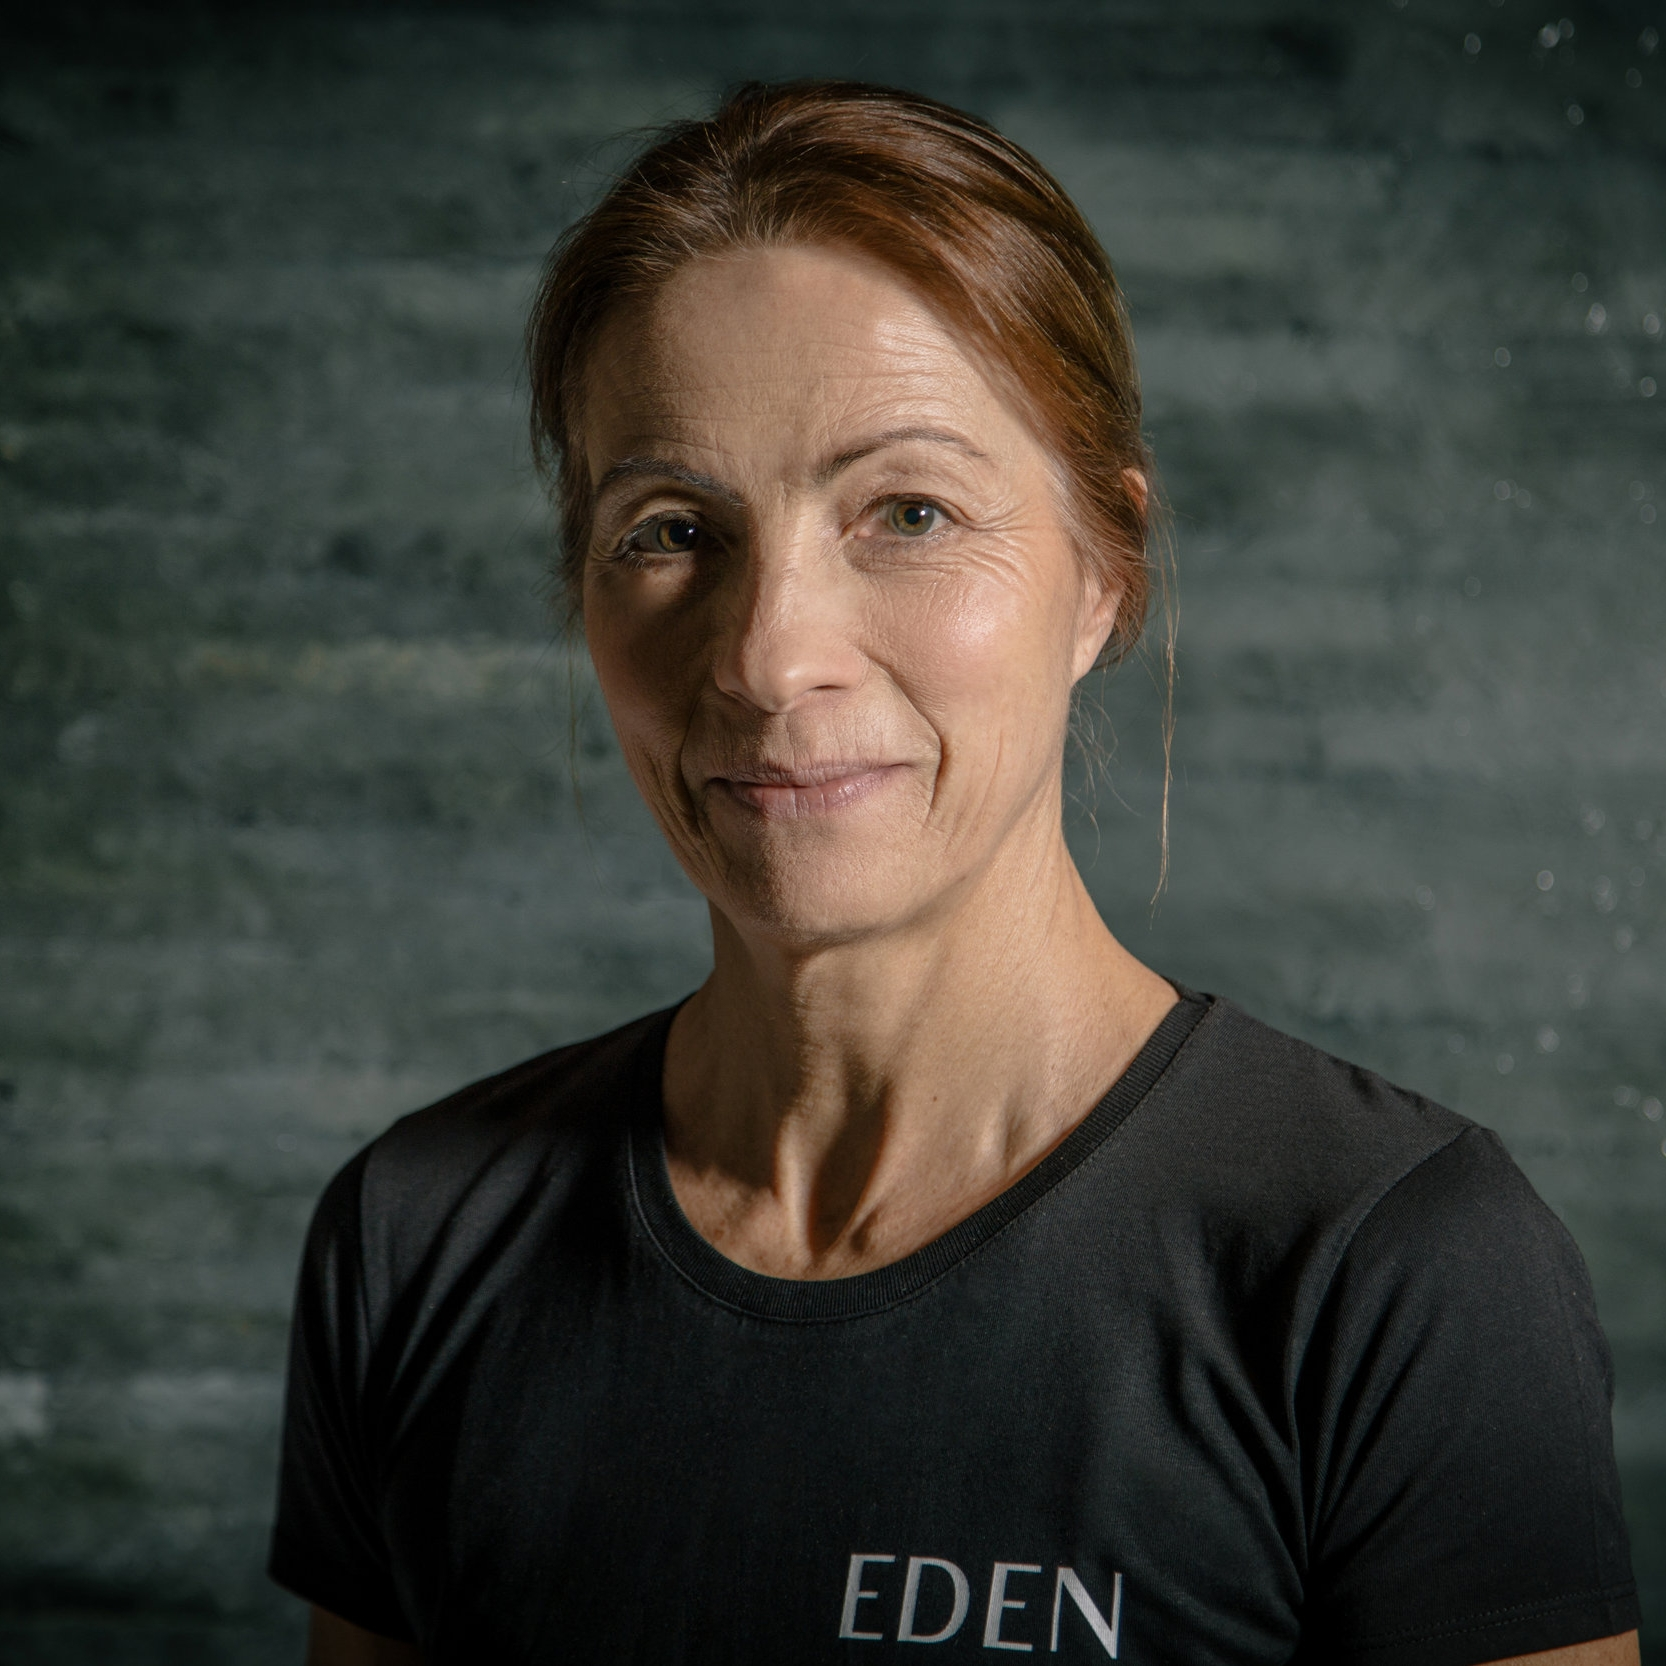 Roz Gerber   SPECIALIST AREAS: • Swimming Lessons • Short & Long Distance Running • Over 50s Training • Functional Training & HIIT • Power Plate & Pre/Post-Natal